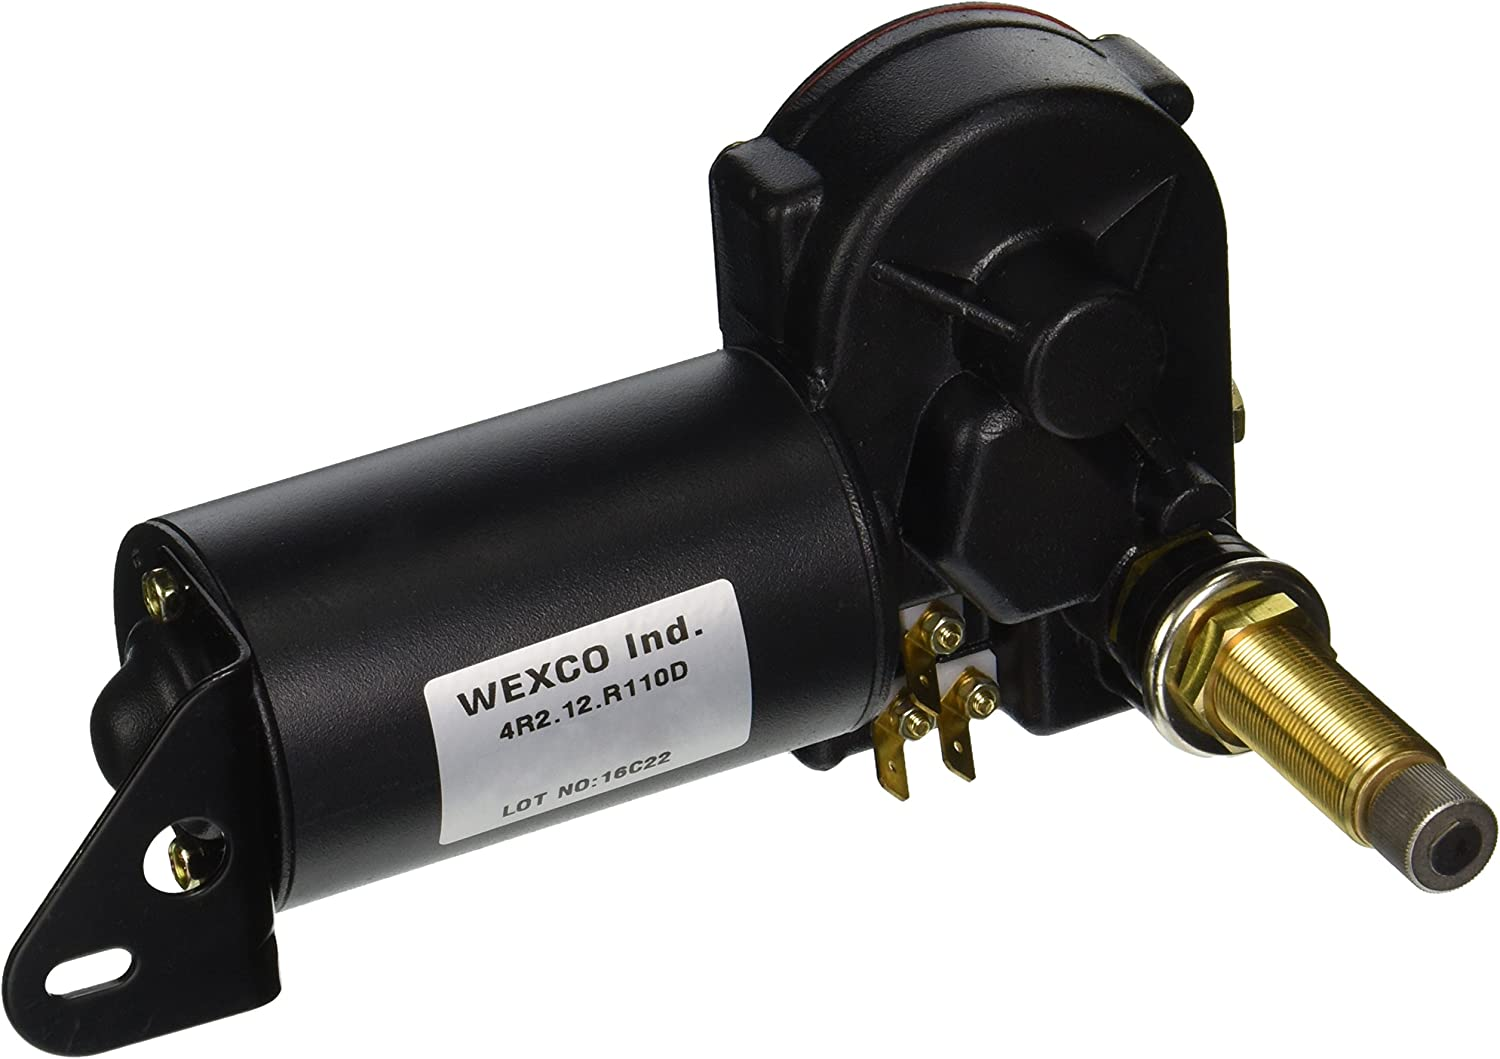 Wexco Windshield Wiper Motor 4R1.12.R110D With Wipers